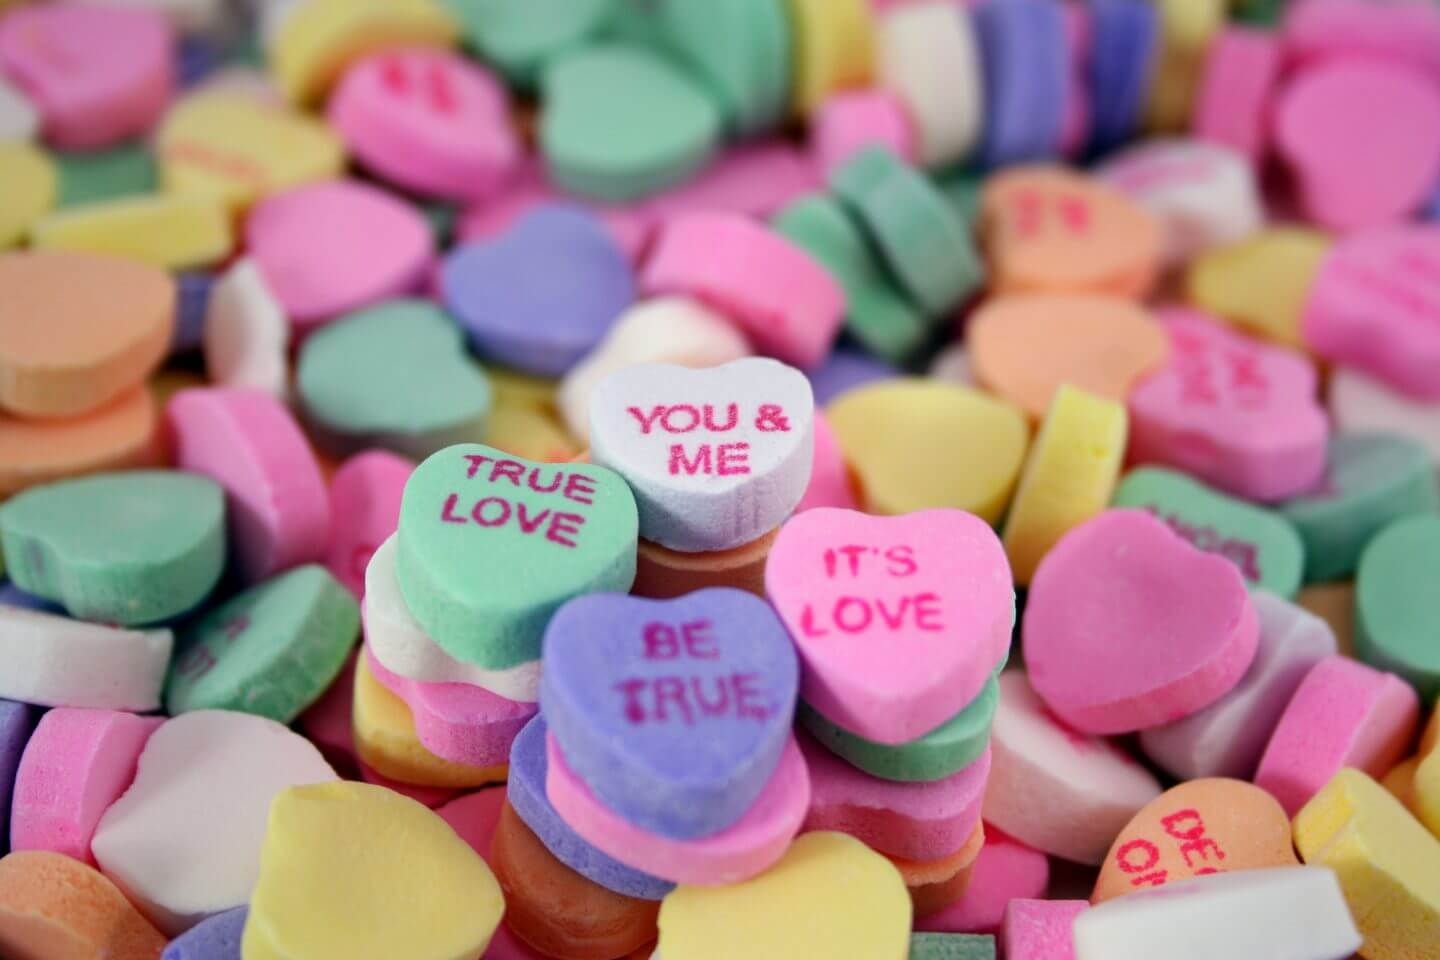 Make Your Own Sweethearts for Your Sweetheart